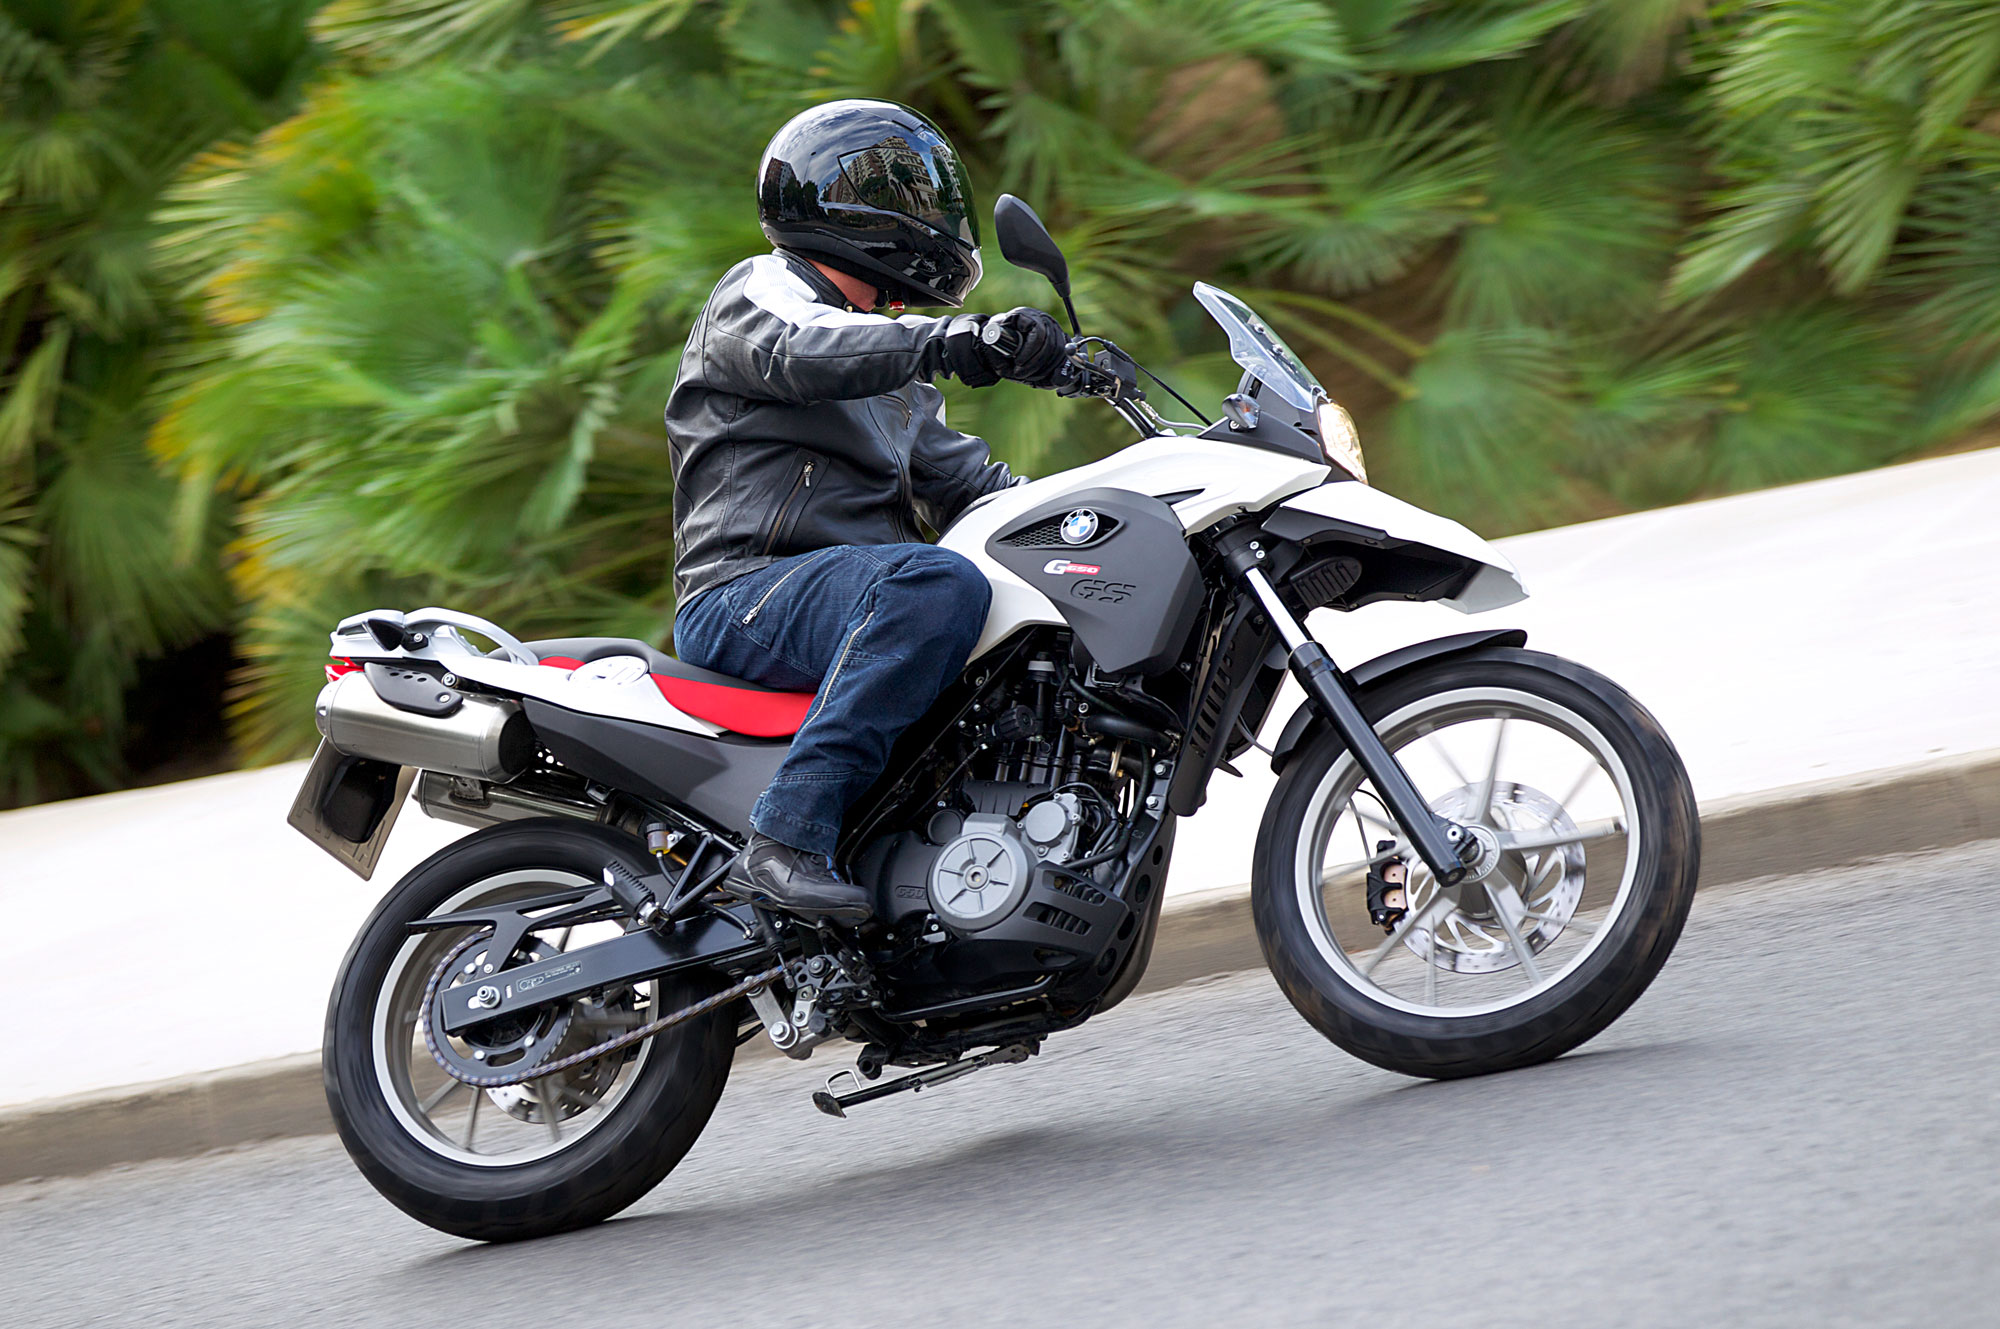 BMW G 650 GS images #78275